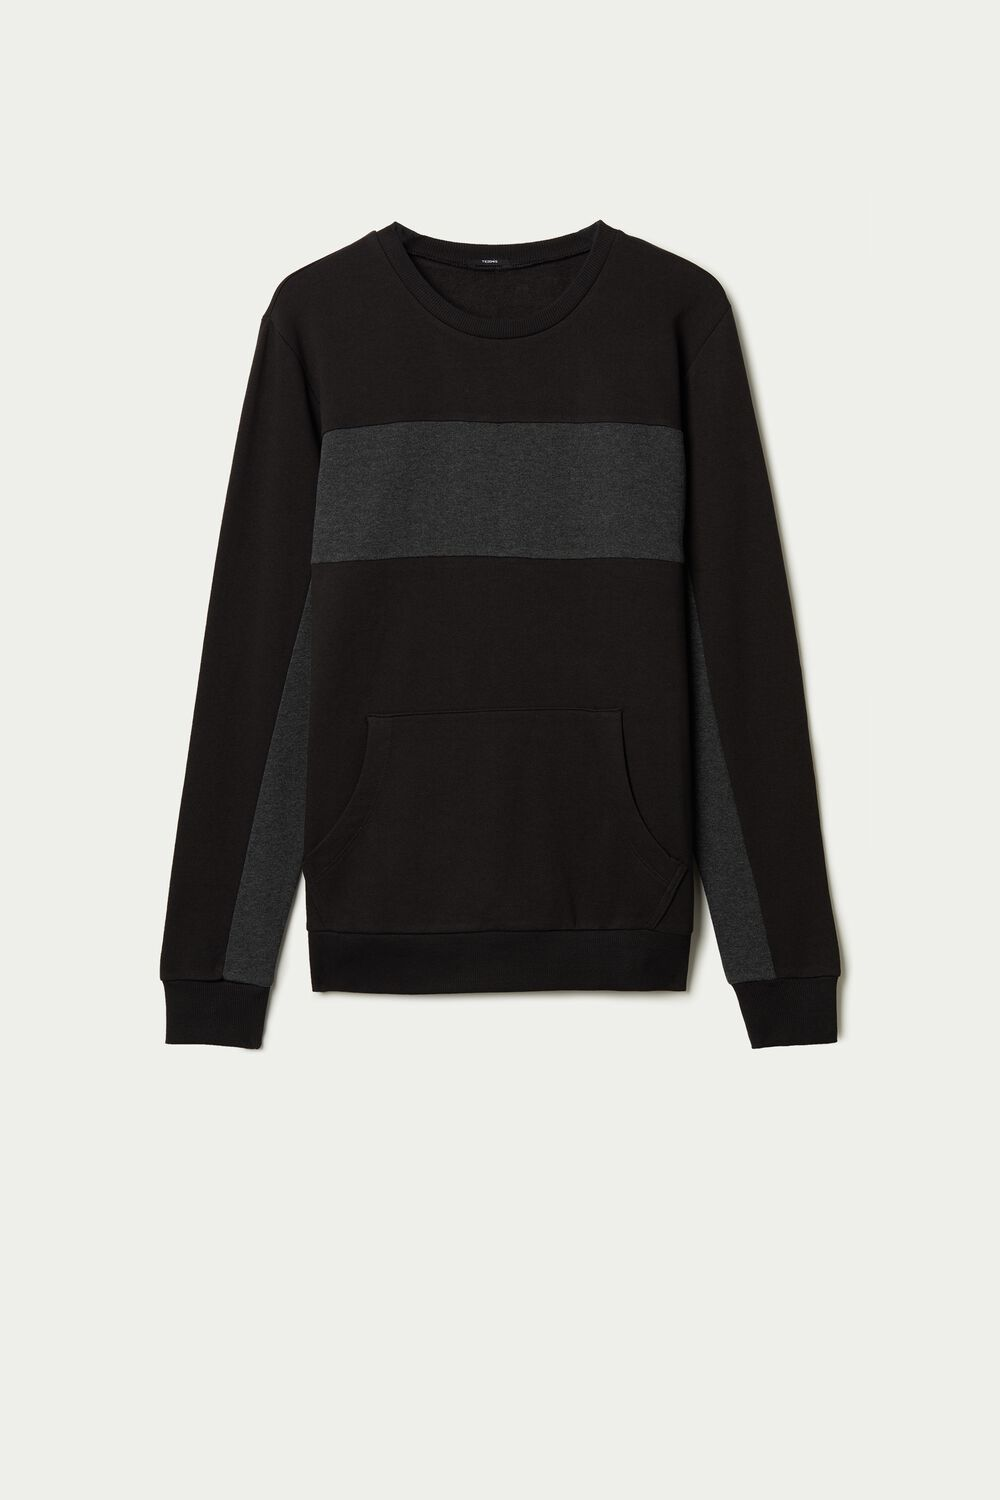 Two-Tone Cotton Sweatshirt with Pocket